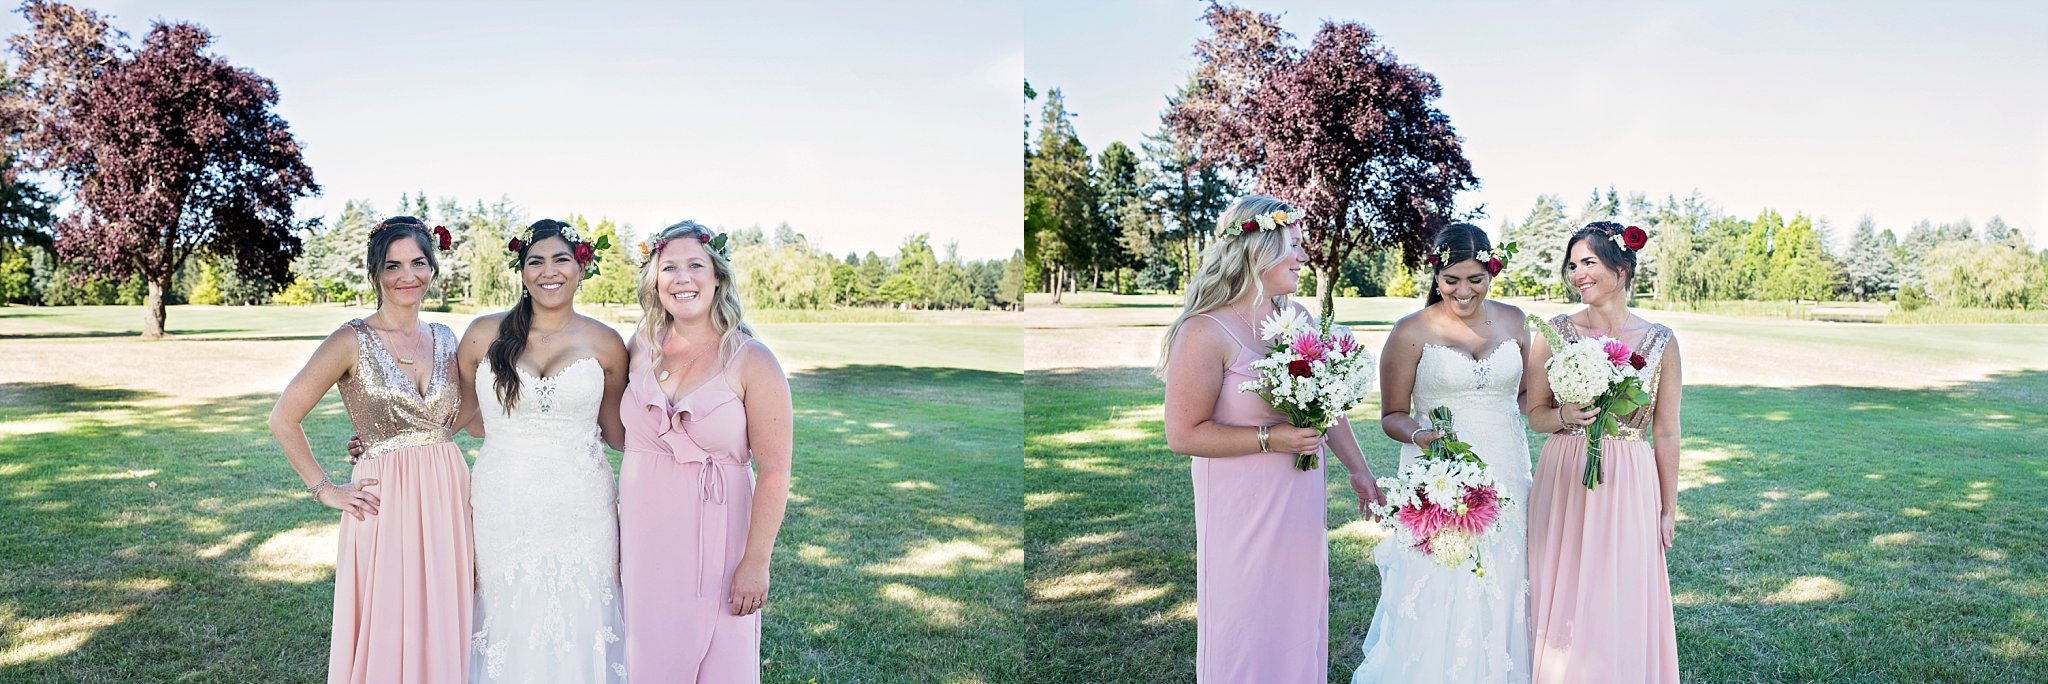 Oregon wedding photographer, Albany wedding photographer, Salem wedding photographer